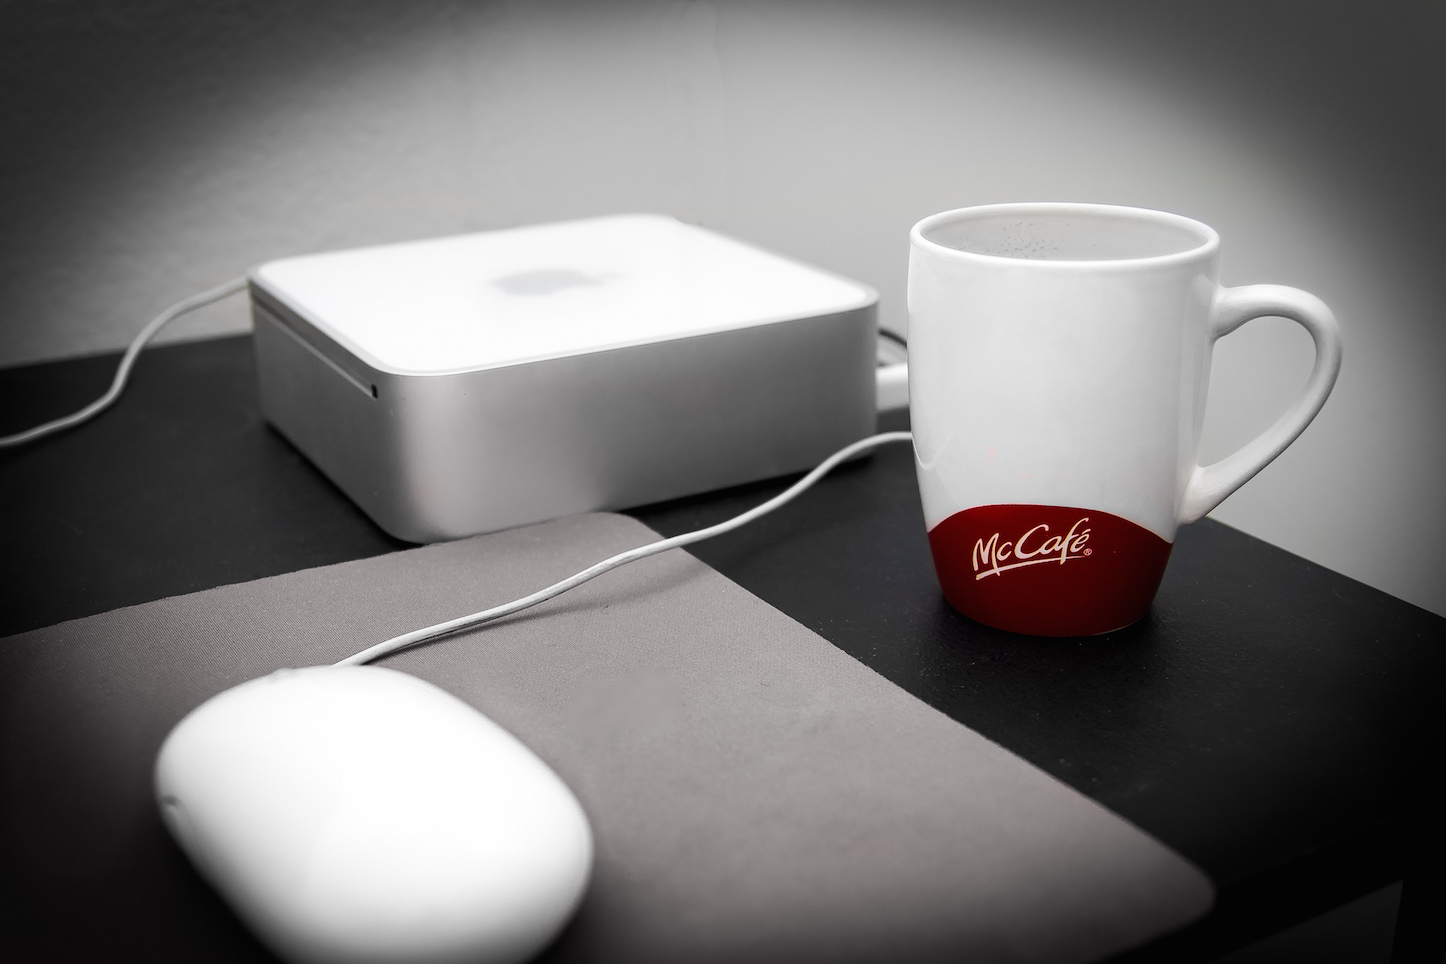 Mac mini macdonalds